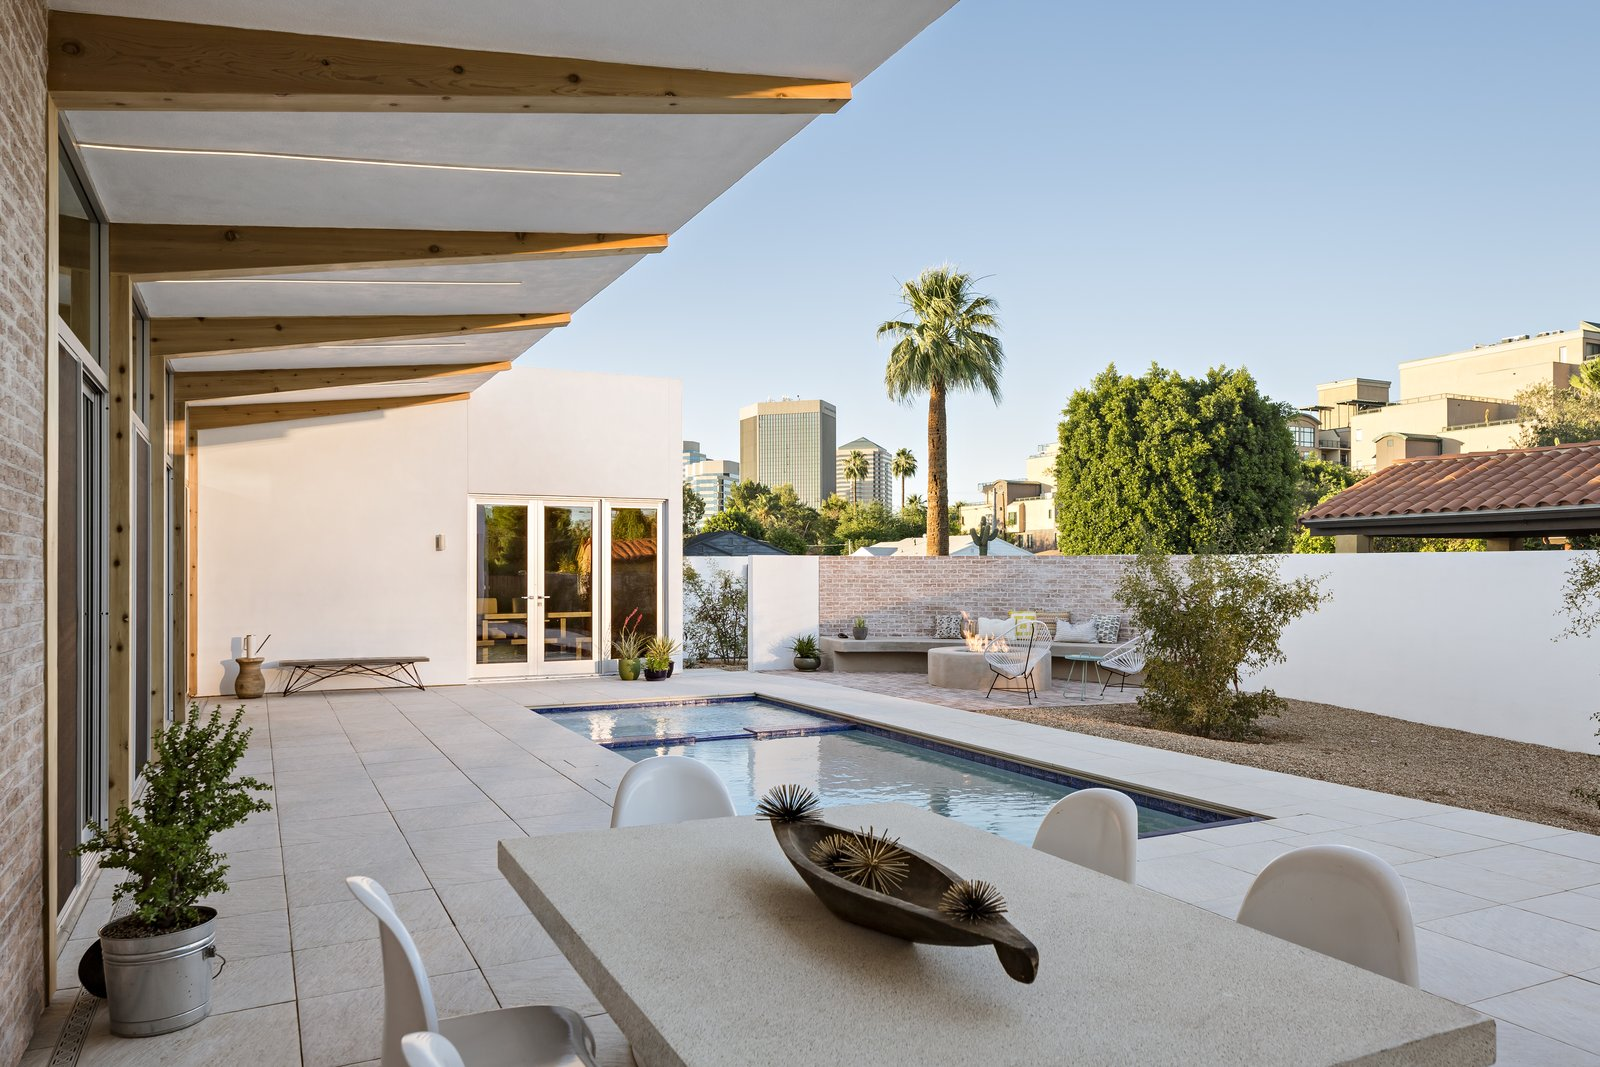 Outdoor, Side Yard, Small, Trees, Hardscapes, Pavers, Decomposed Granite, and Desert A 10 foot deep cantilevered roof provides consistent shade pool side in the courtyard  Best Outdoor Desert Decomposed Granite Photos from Sol House